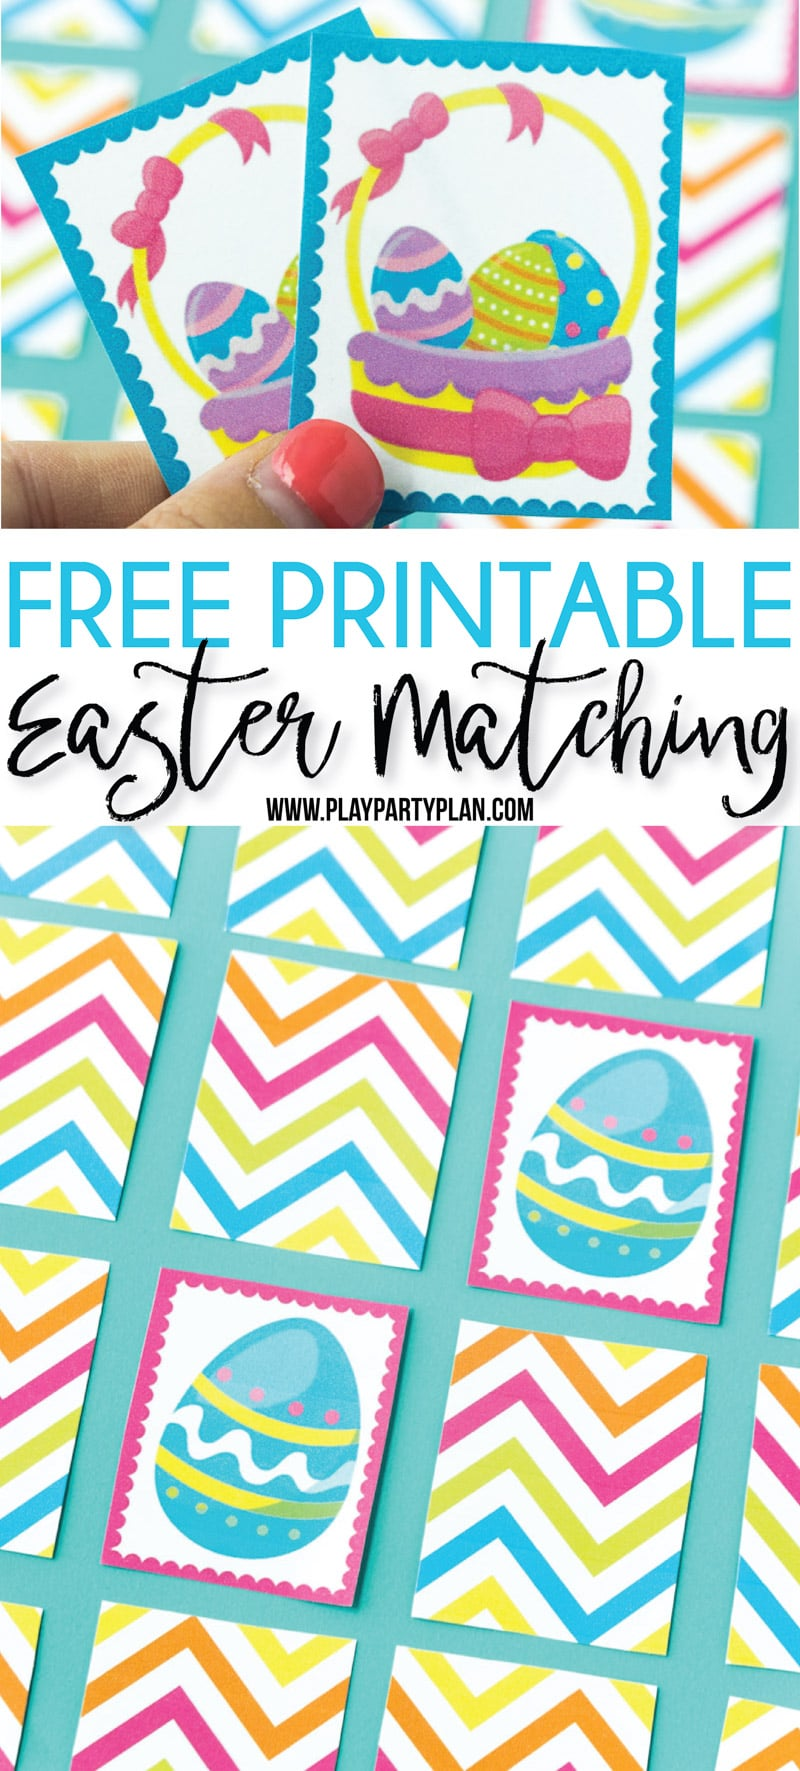 This free printable Easter memory game is one of the cutest Easter games for kids! Perfect for kindergarten, for preschoolers, or add a timer to make it for all ages! Simply print and play! #Easter #Eastergames #gamesforkids via @playpartyplan